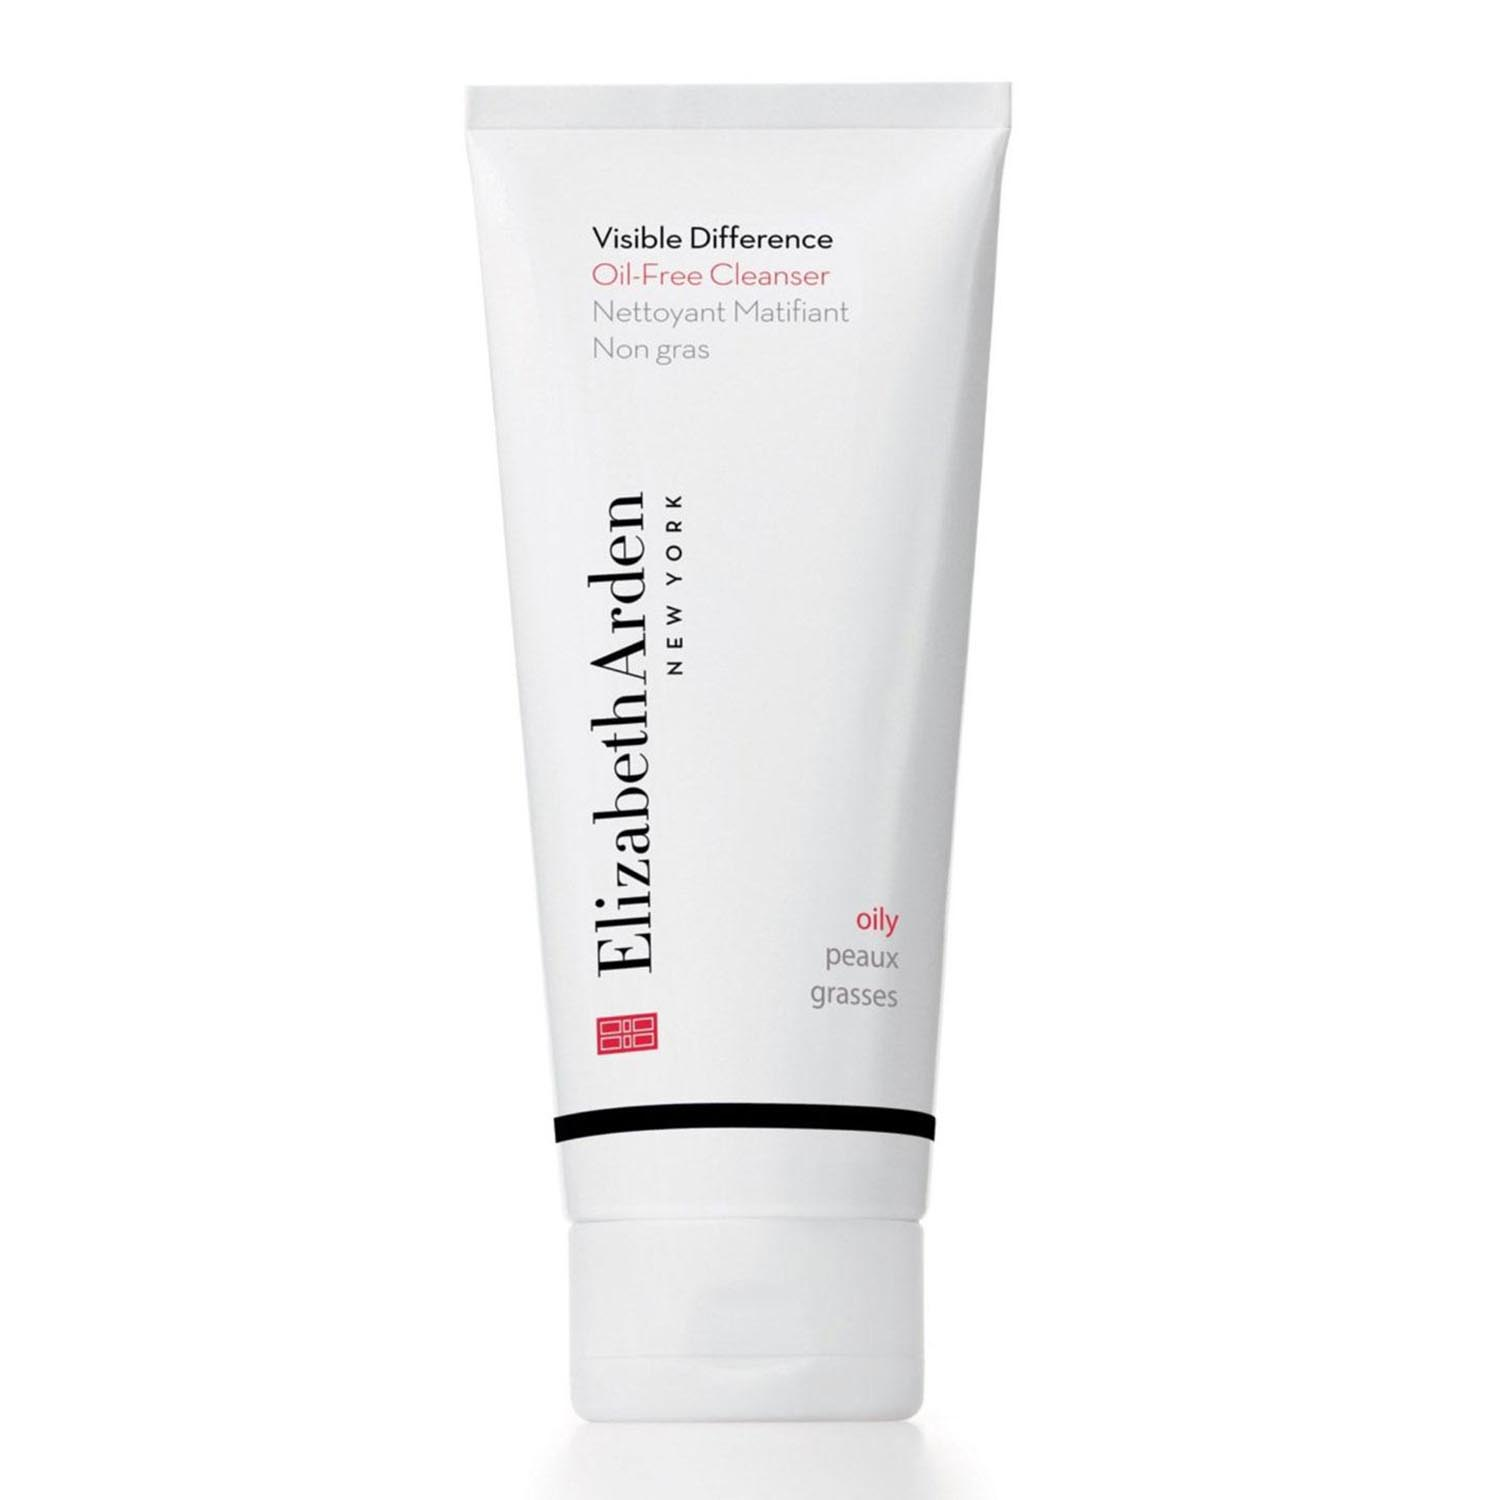 Elizabeth arden visible difference oil free cleanser oily skin tester 150ml